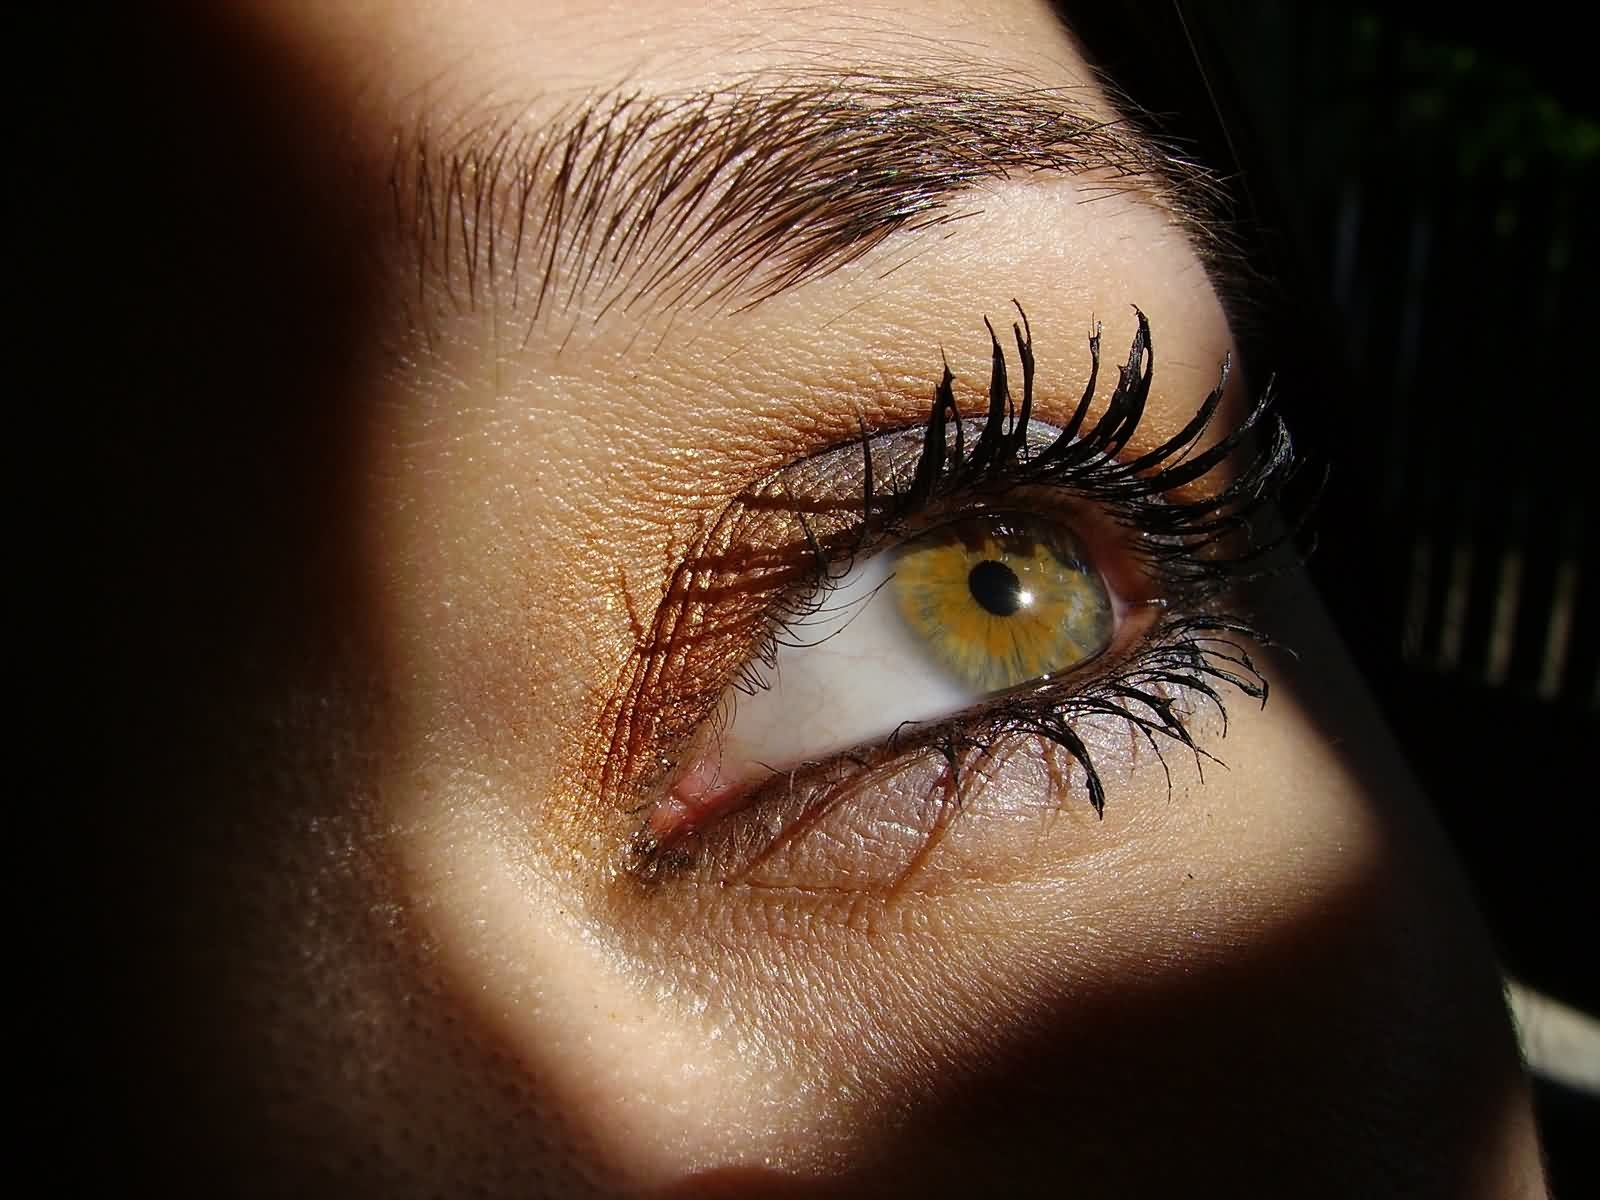 Download High quality eye in the light Eyes Wallpaper Num 10 1600x1200